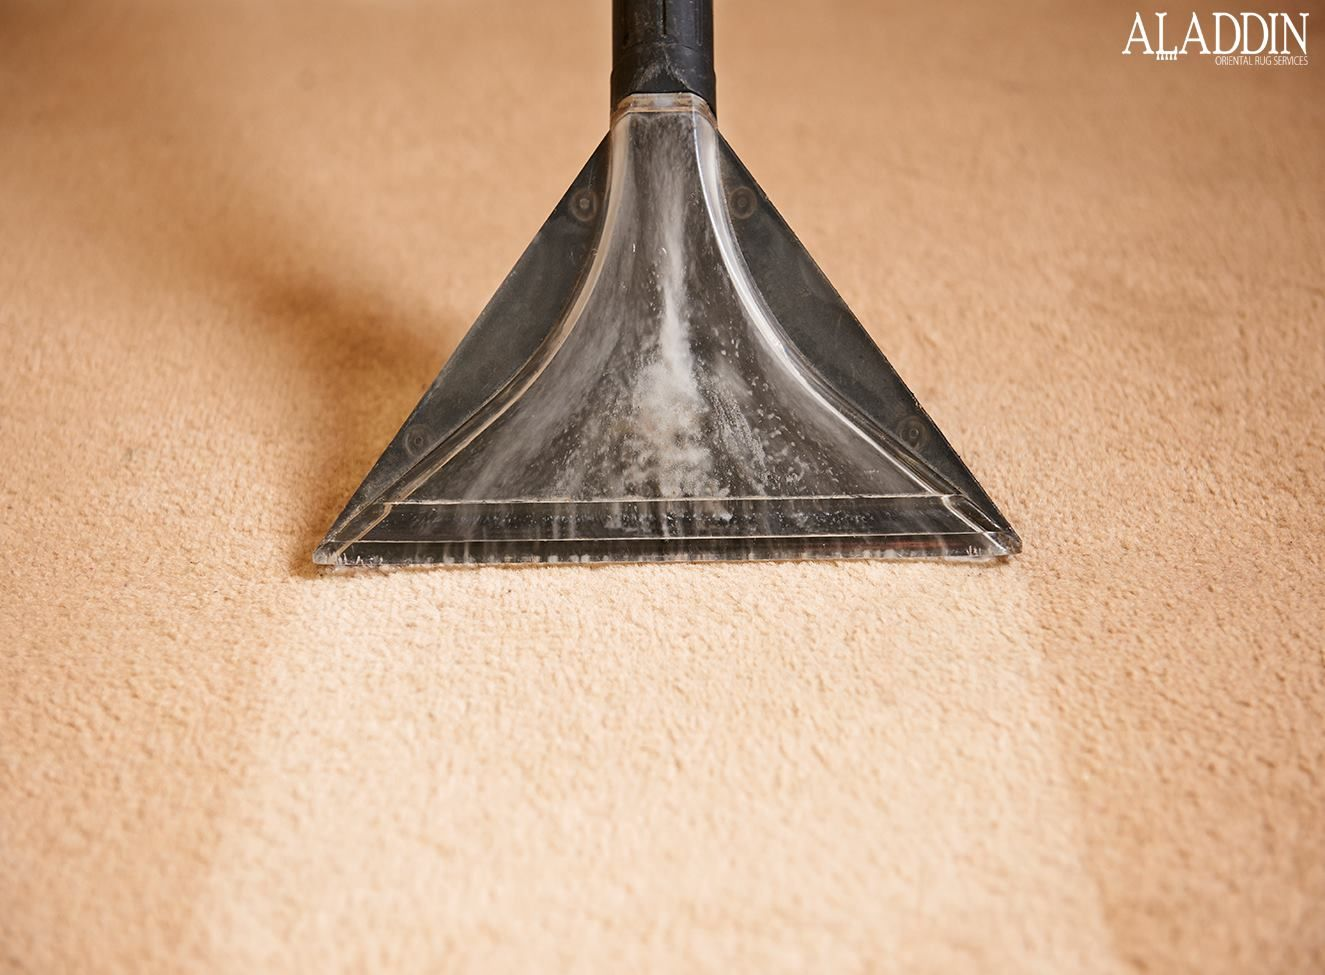 Aladdin Rug Services has been providing quality and reliable carpet and rug cleaning services. We're New Jersey's leading carpet and rug cleaning company and guarantee your satisfaction each and every time.  #RugCleaning #OrientalRugCleaning #OrientalRugRepair #OrientalRugDyeing #OrientalRugRestoration #OrientalCarpetCleaning #CommercialCarpetCleaning #OrientalRugServices #PersianRugCleaning #OrientalAreaRugCleaning #AntiqueOrientalRugCleaning